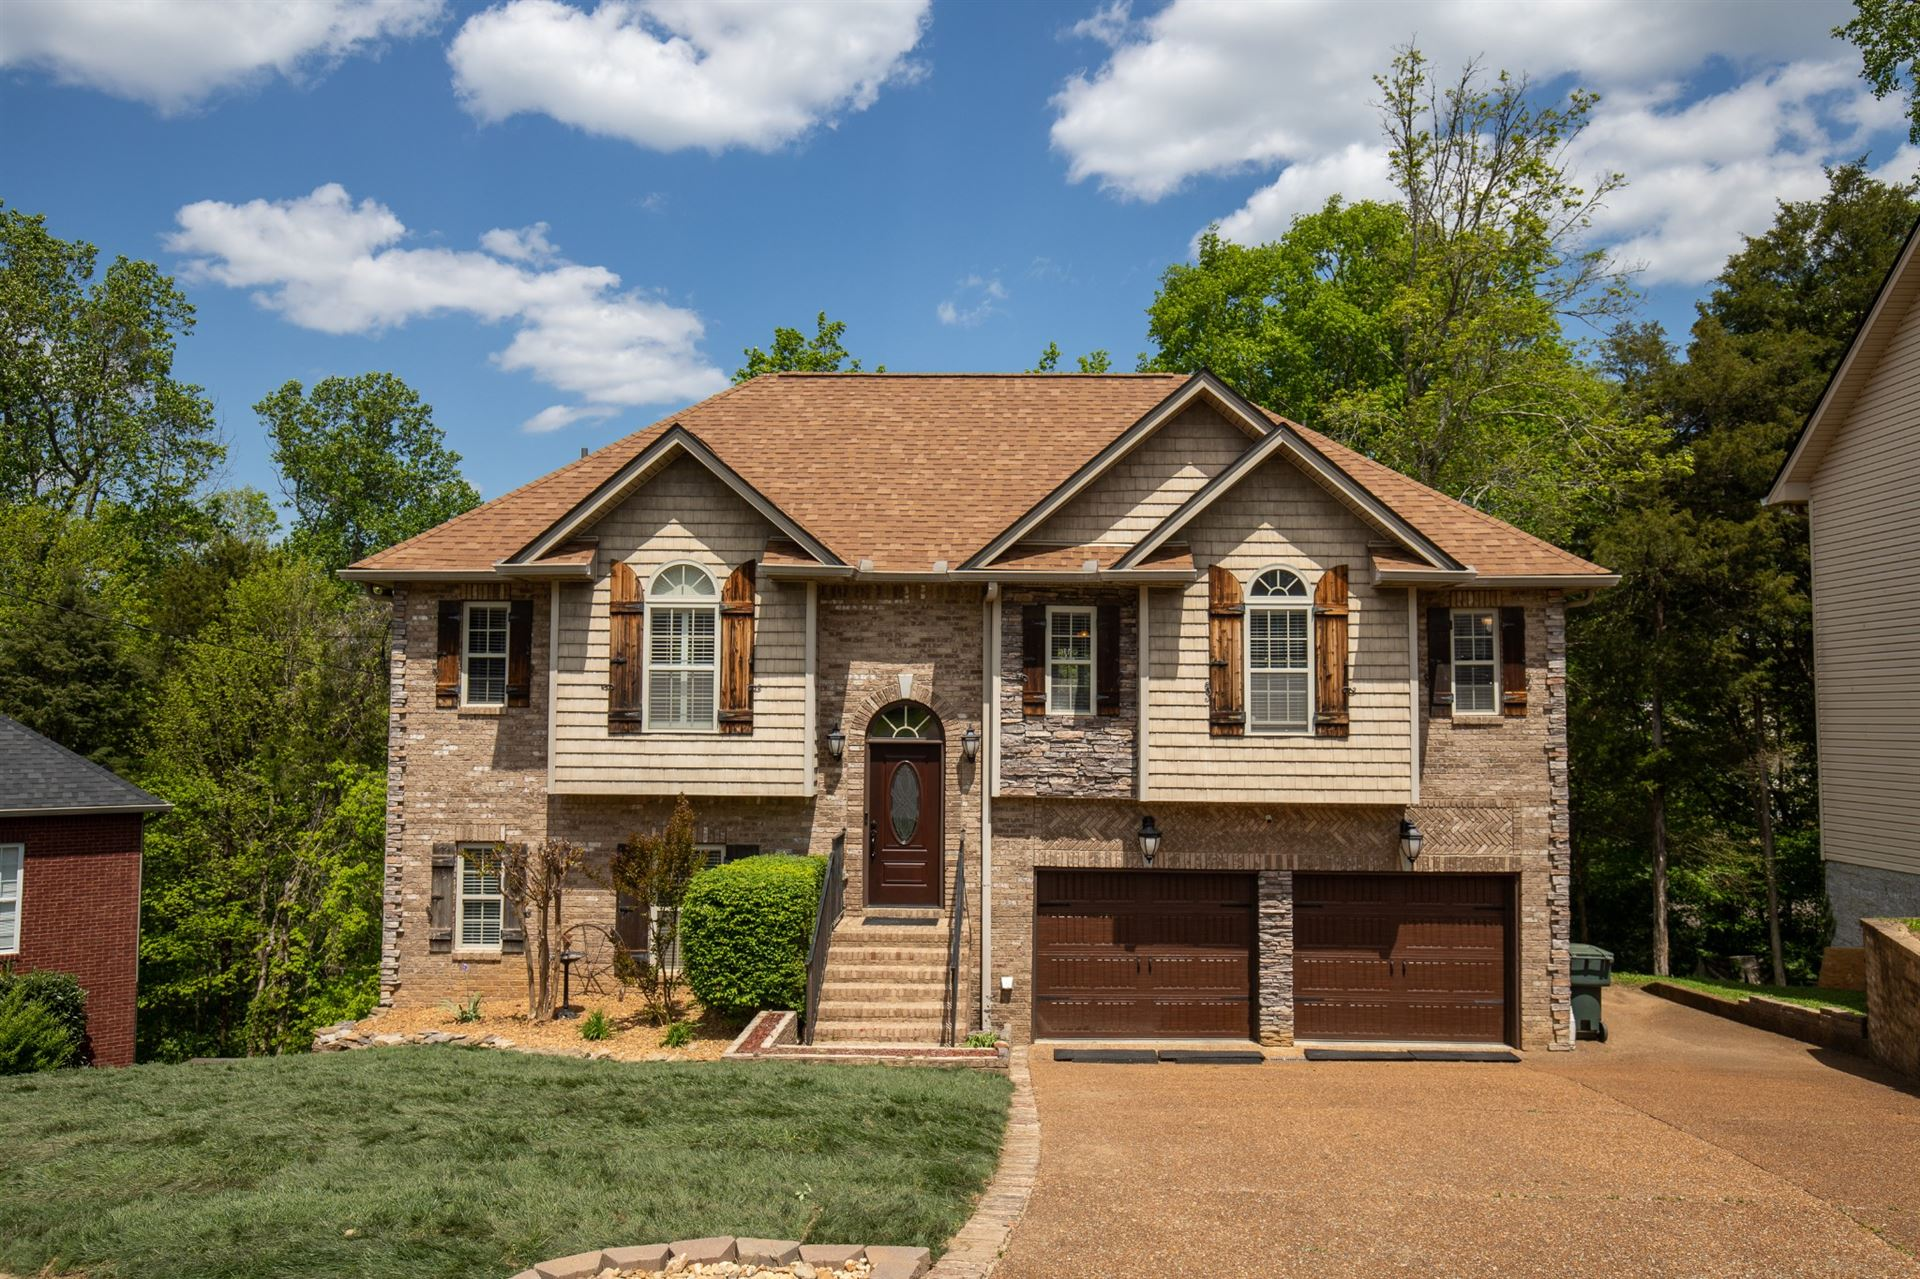 3216 W Yorkshire Ct, Old Hickory, TN 37138 - MLS#: 2246307